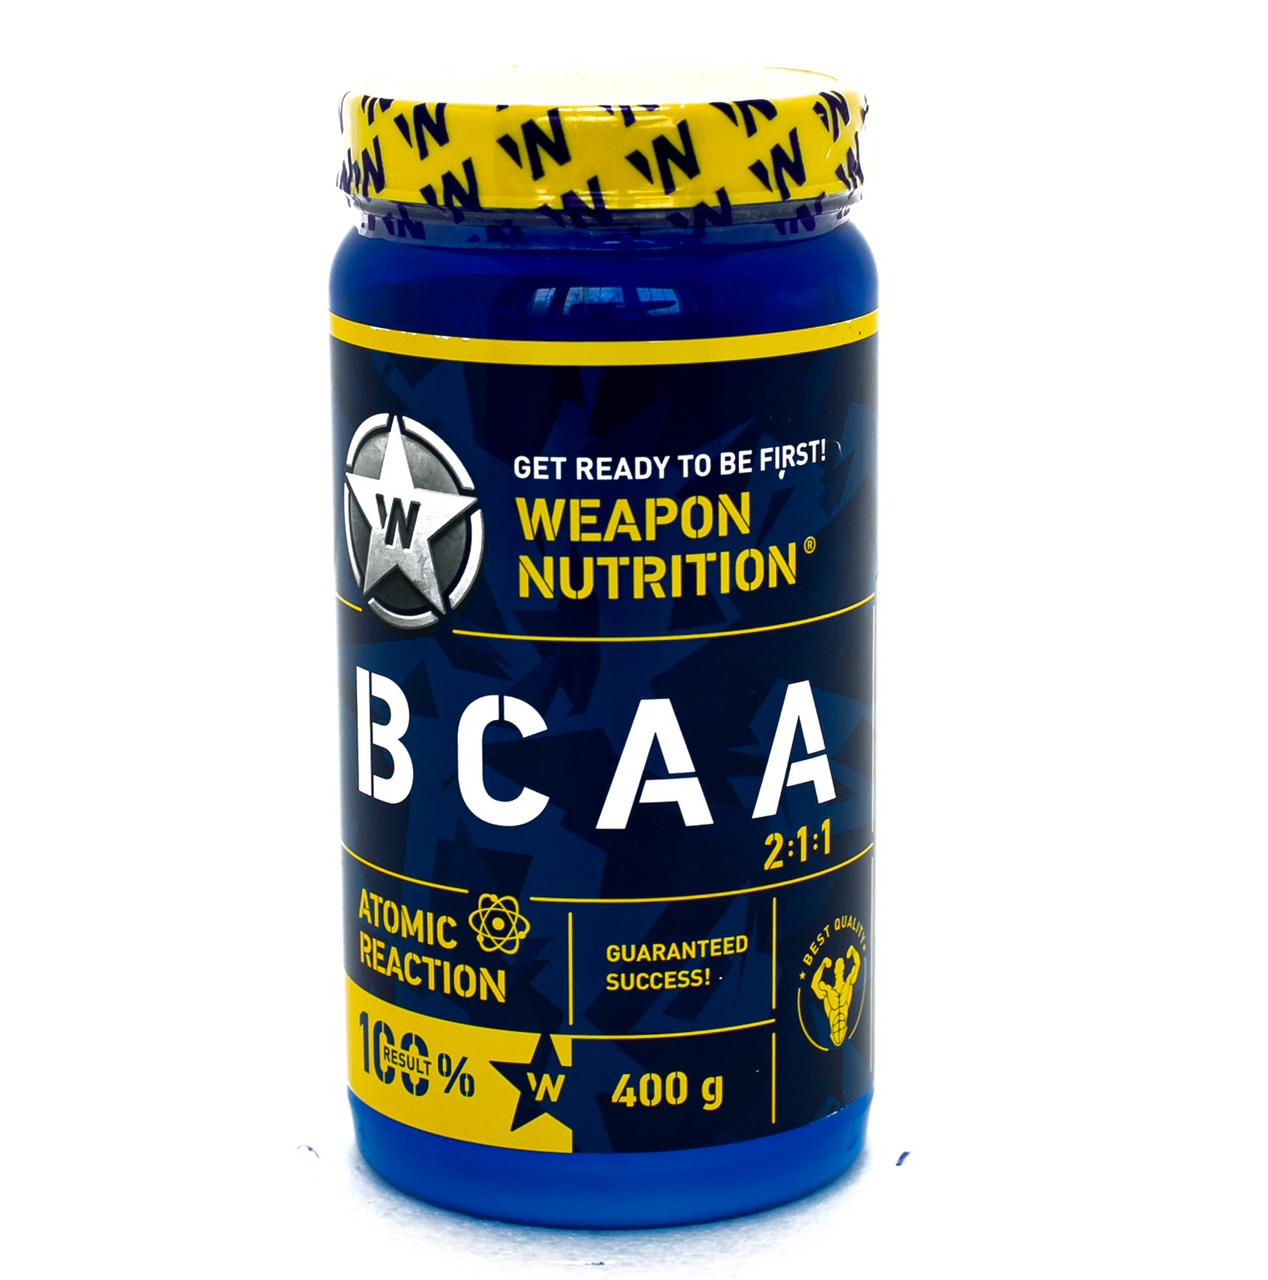 BCAA 2-1-1 Atomic Reaction 400g